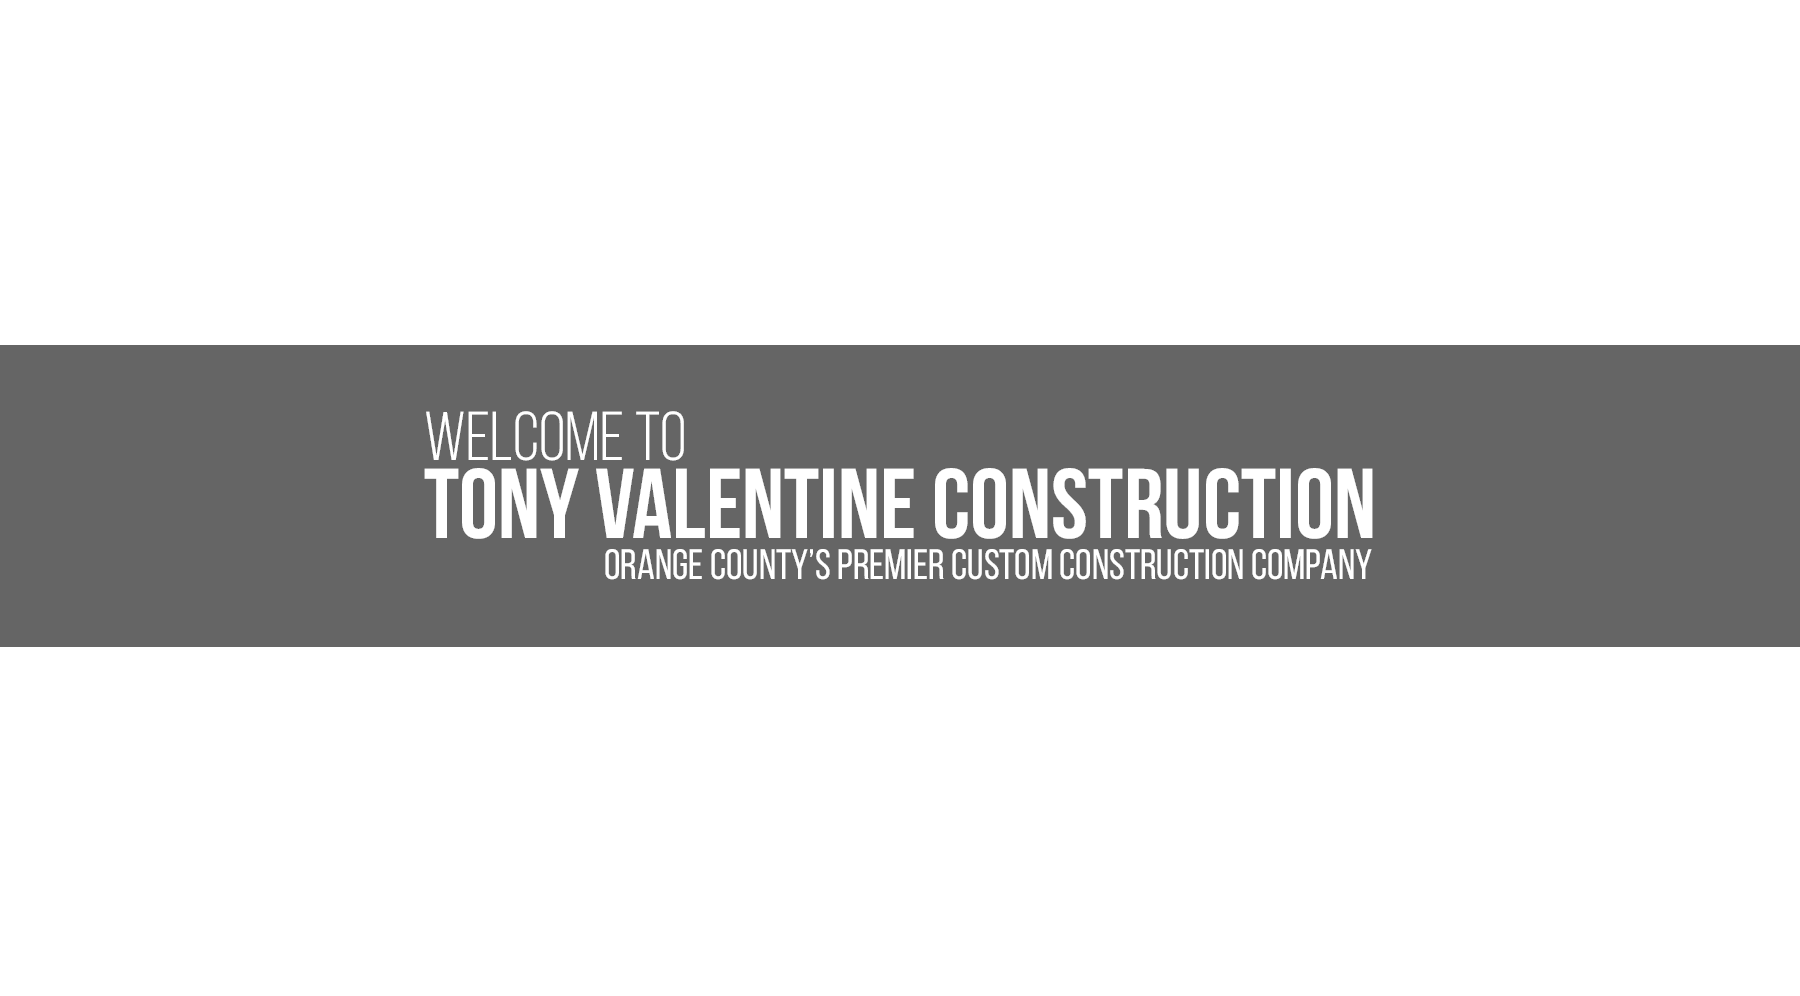 Tony Valentine Construction | Top Shelf Construction